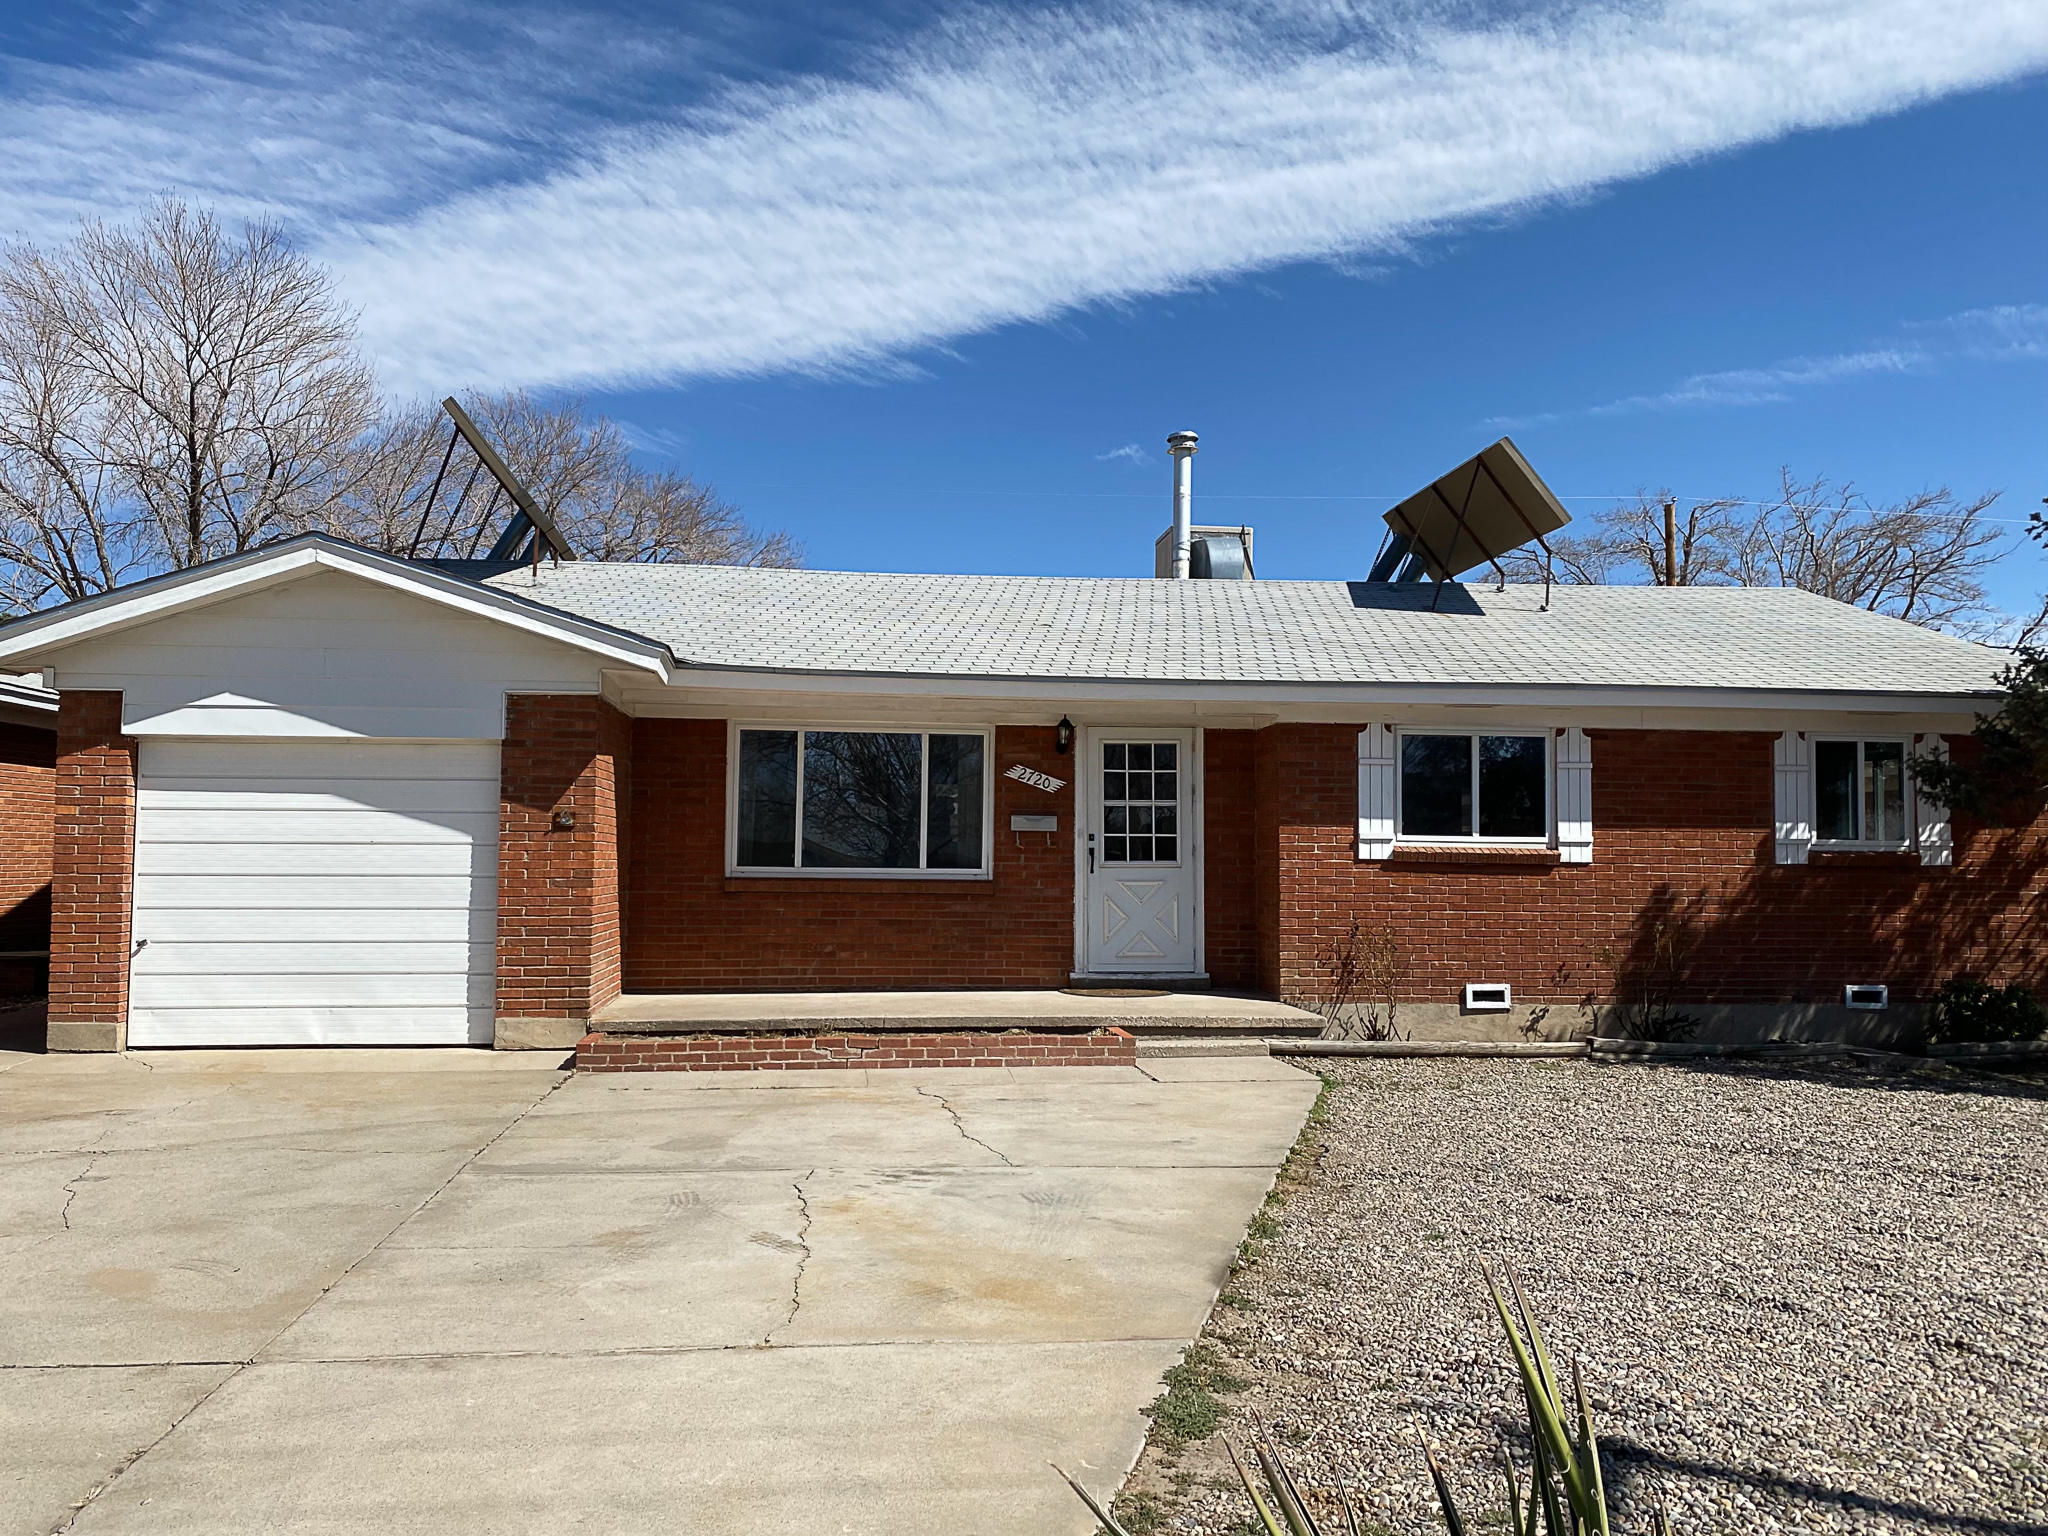 Brick single level charmer in the heart of Uptown! White oak hardwood floors and vintage scraped ceiling with plaster crown moldings adorn the living room. Kitchen features solid wood custom cabinetry, gas stove and all appliances stay. Move in ready 3 BR 2 Bath owned by the same family for over sixty years. Many updates including windows, electrical panel and evaporative cooler in 2020, and CFA furnace approx 3 years young. Garage has been partially converted and adds a 11 X12 heated bonus room for hobbies or work out space. Large service room with storage. Solar system on roof generates additional heat in the cold months. Enjoy Sandia mountain views from the large backyard with plenty of room to garden. Storage shed has power and electric for your projects. Convenient to all you need-